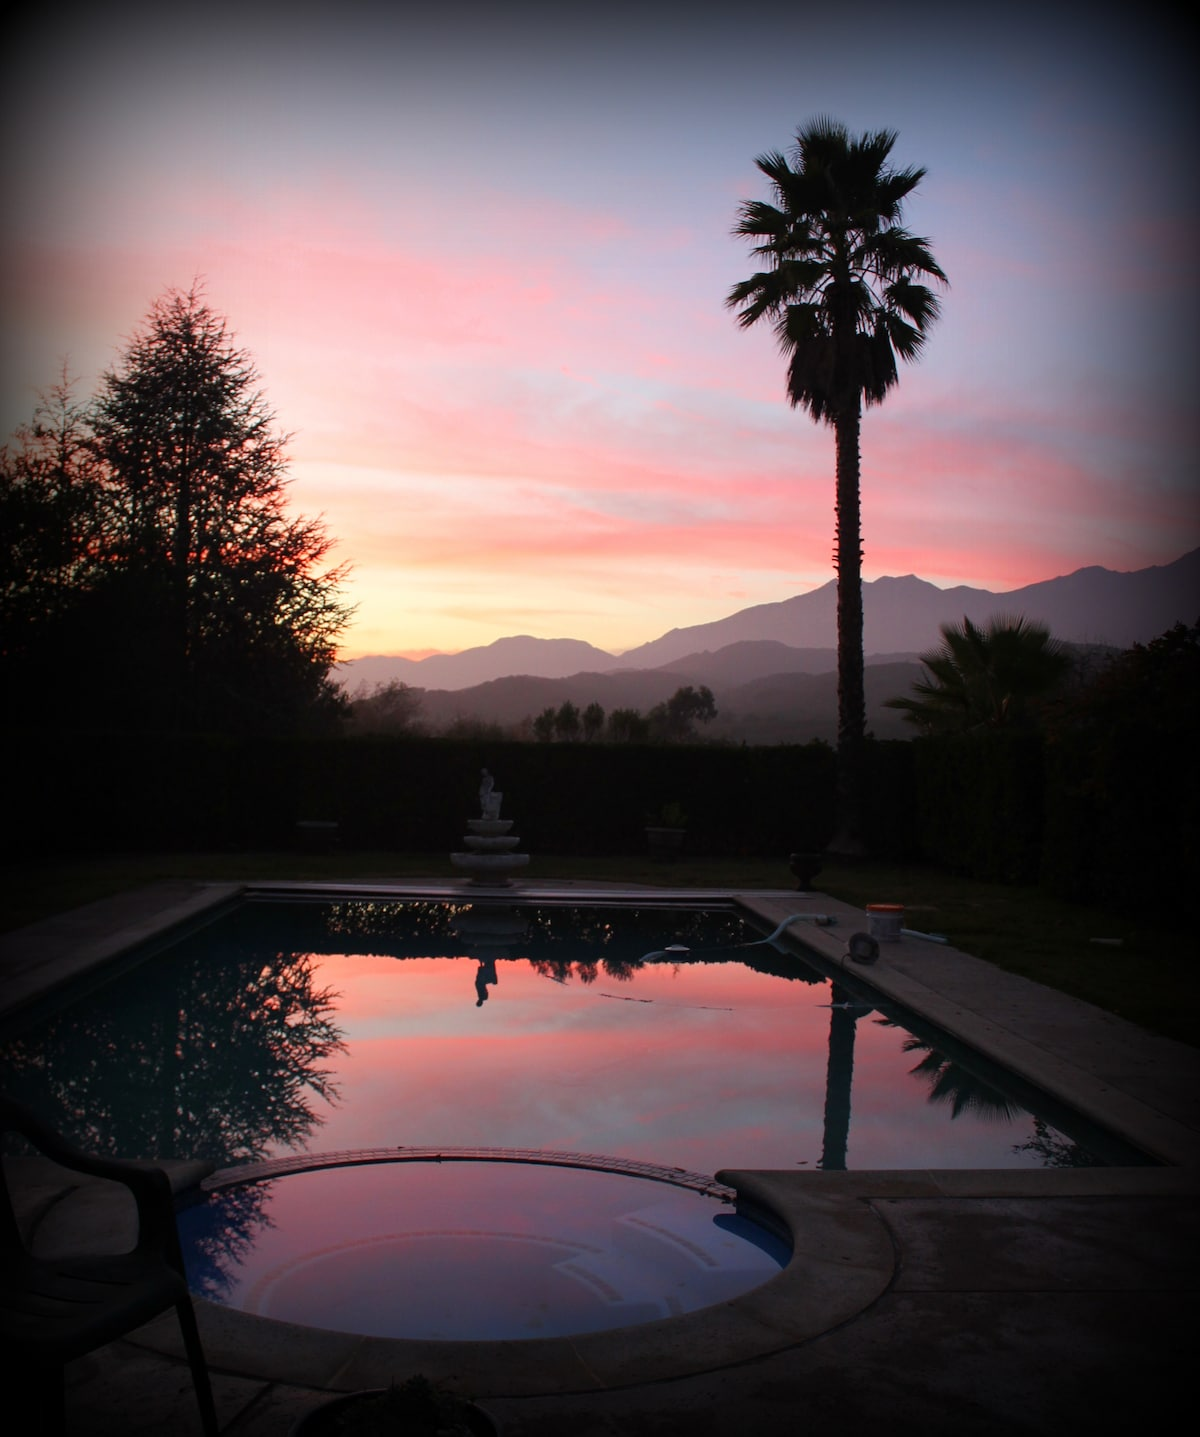 Sunset view from the deck of the pool and mountains.